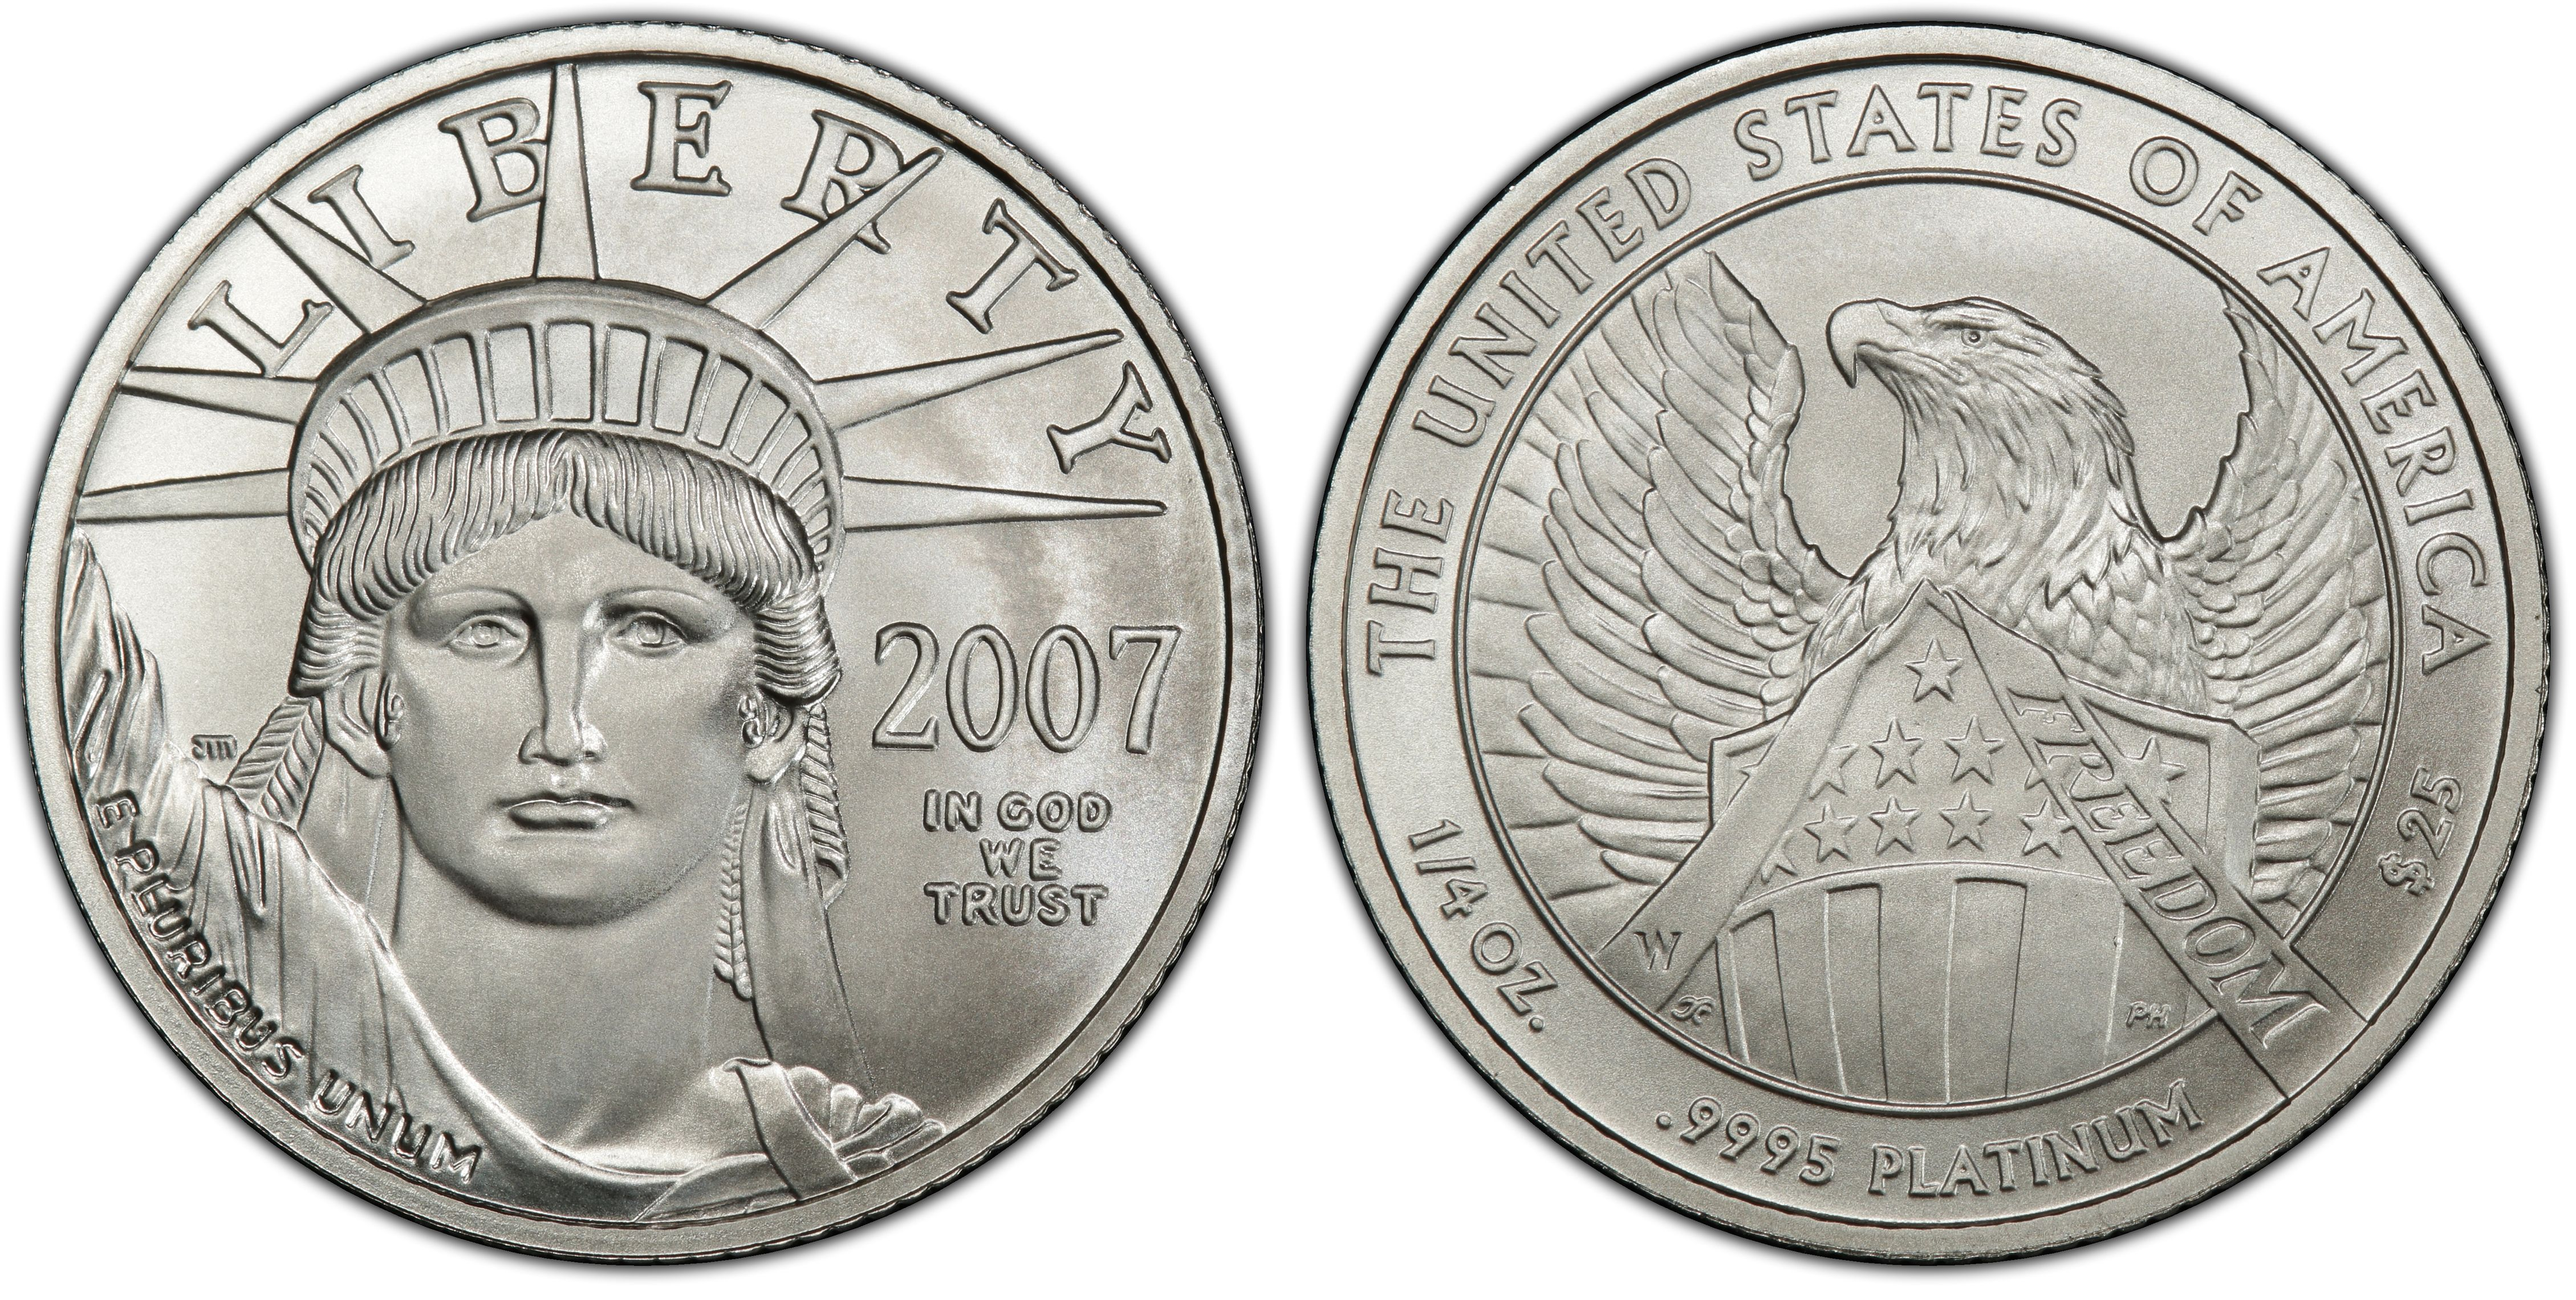 2007-W PCGS SP70 Burnished Silver Eagle 1 oz Coin